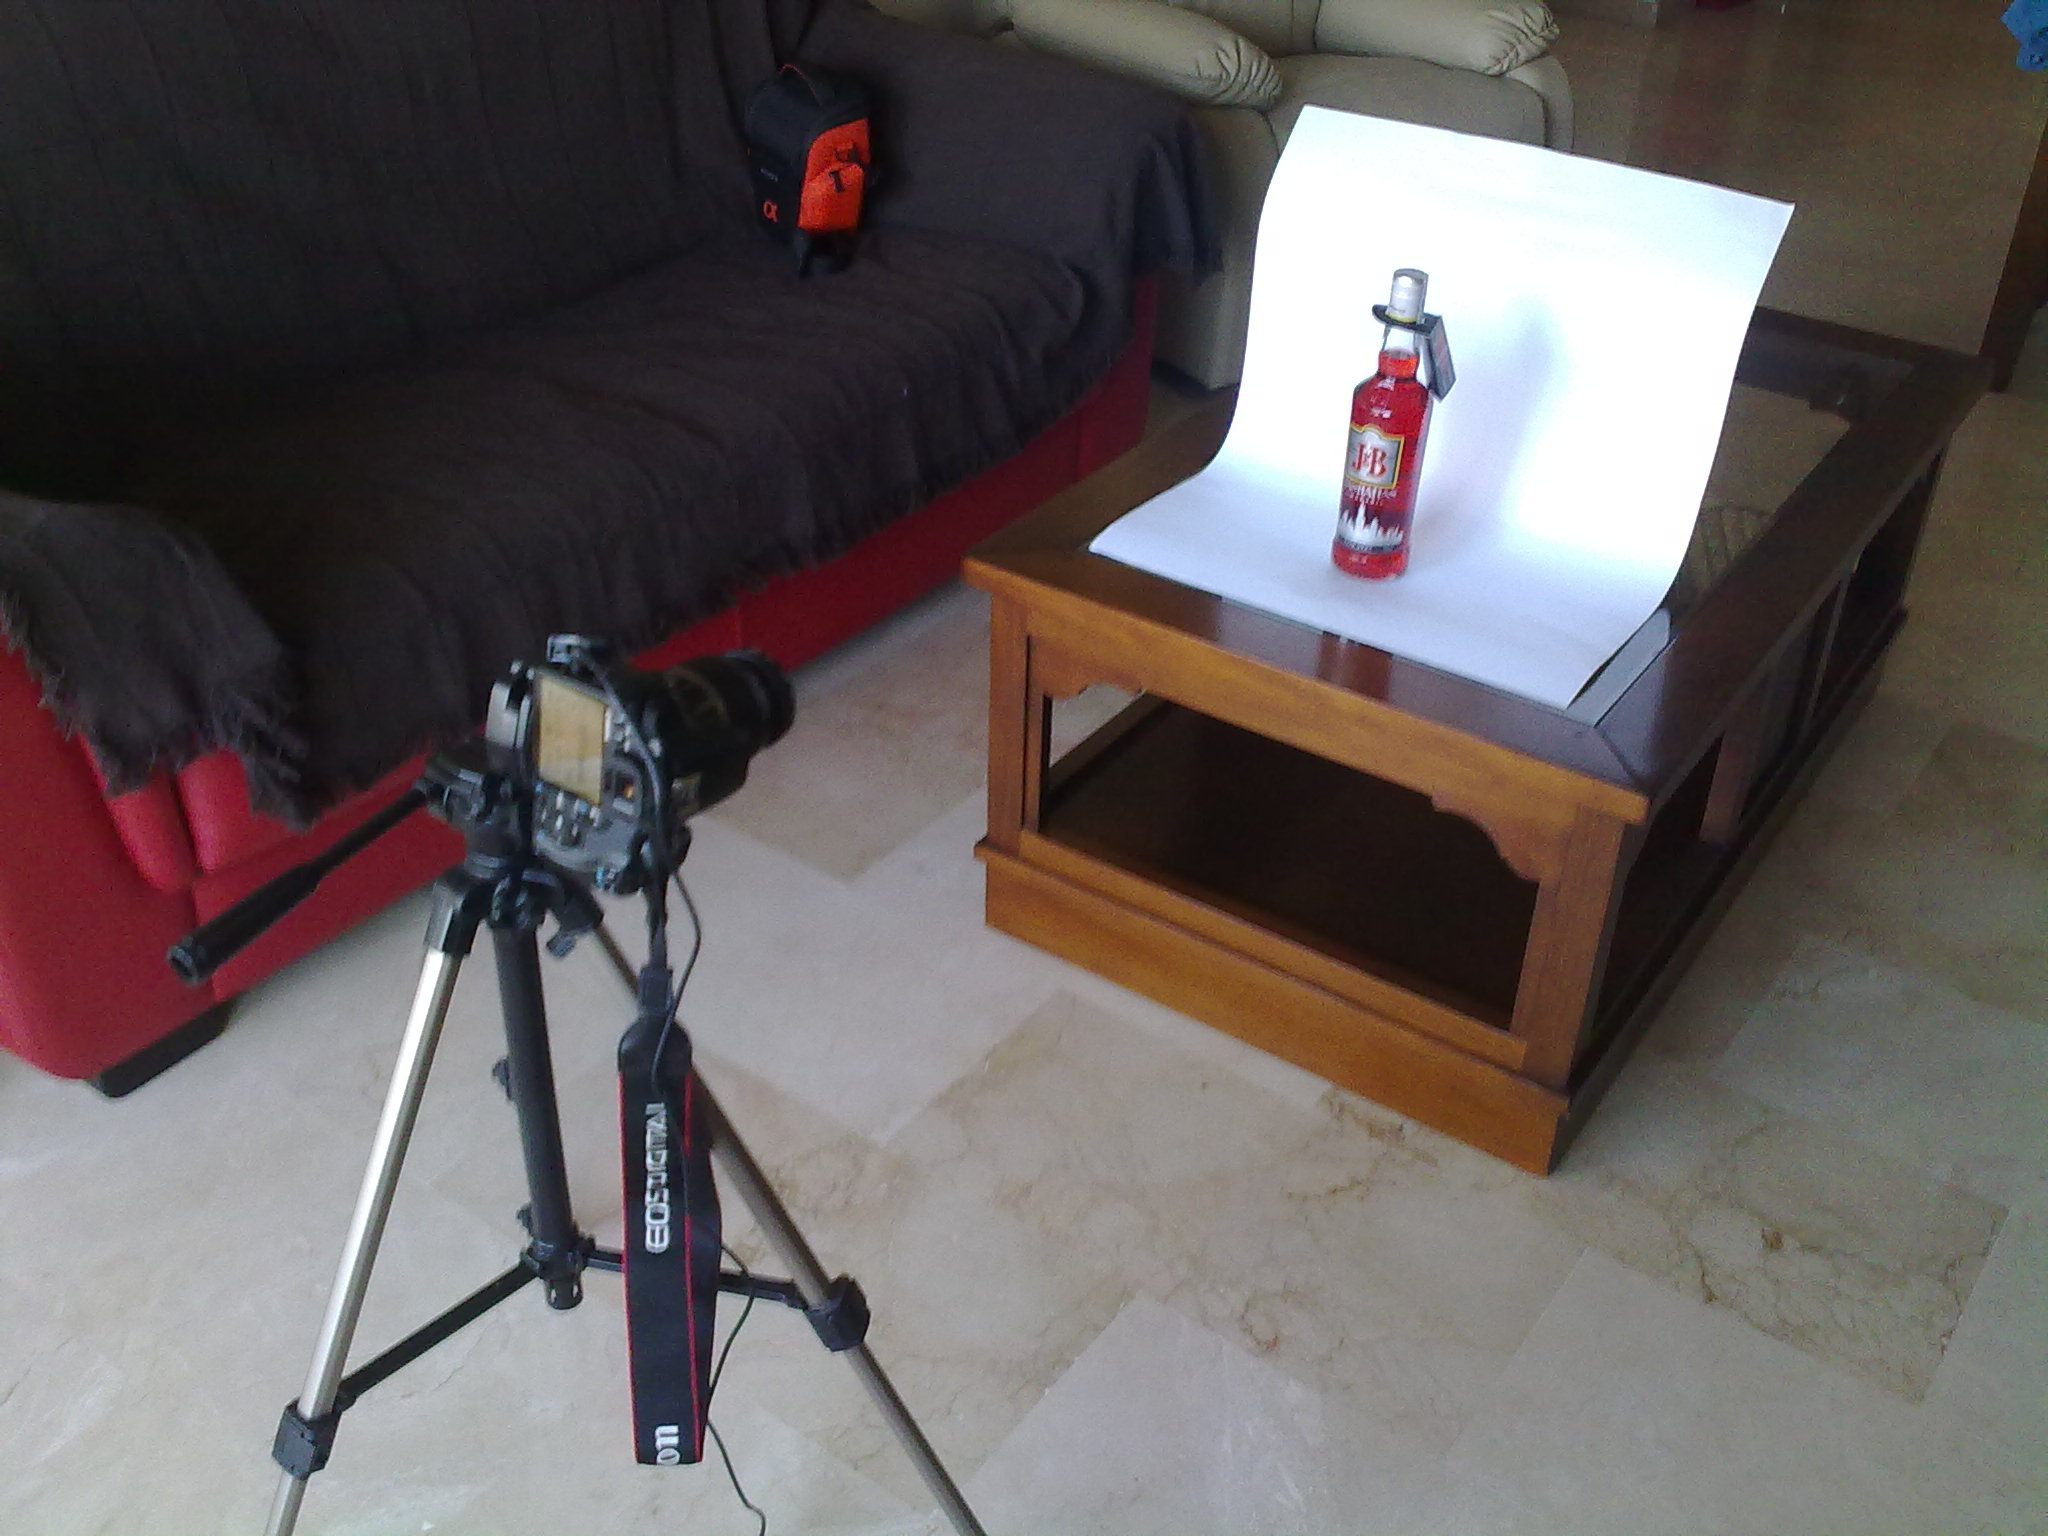 How to use tripod and cardboard to take photos